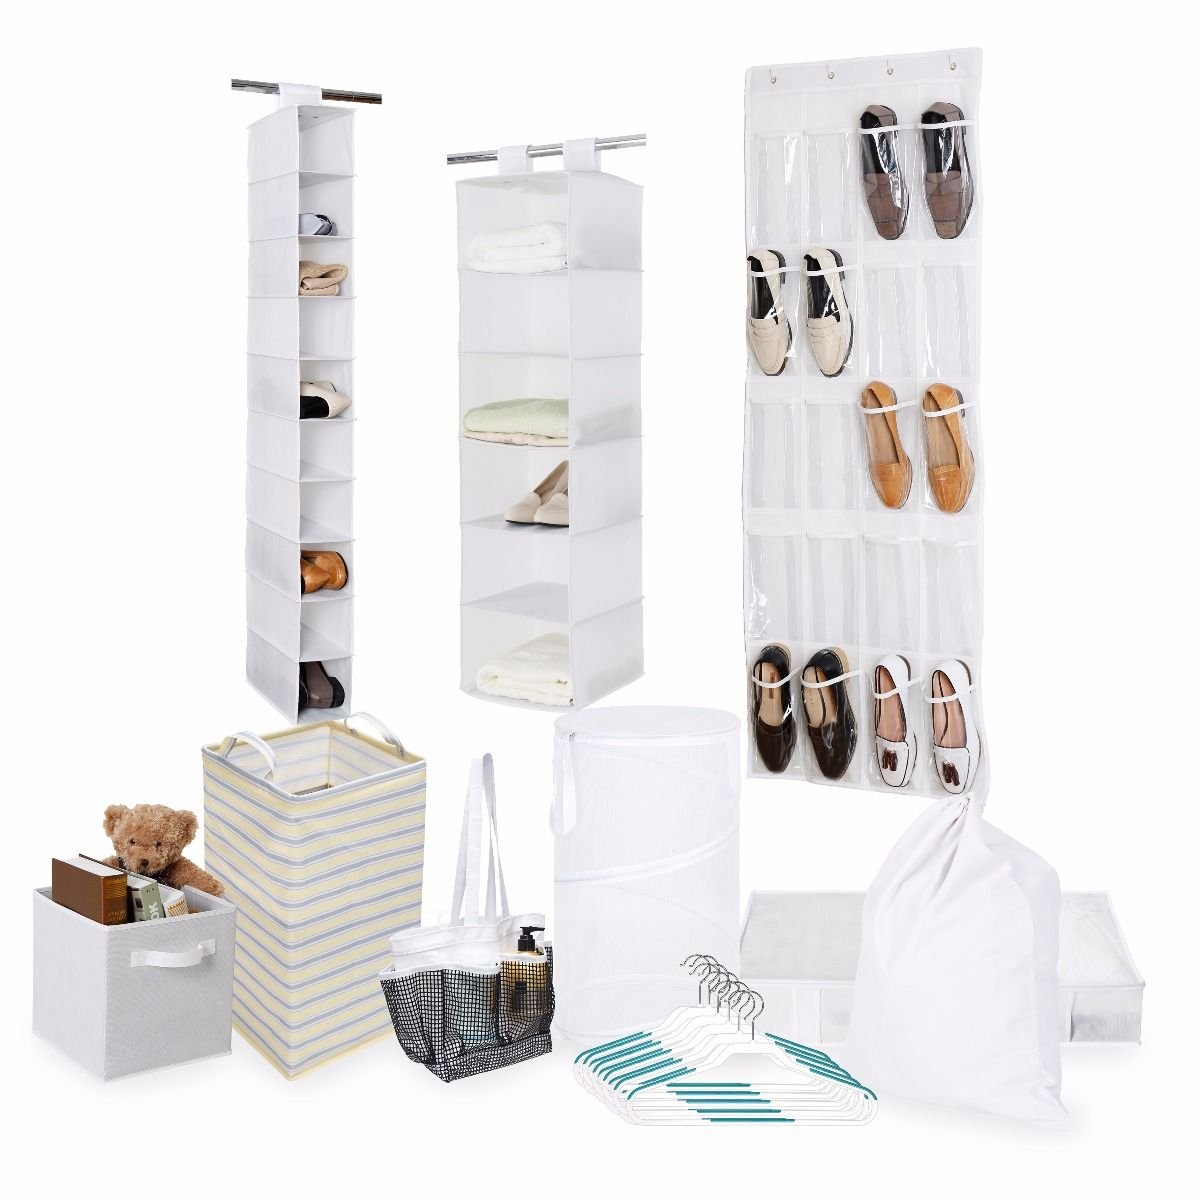 Tidy Living Bundle - Organization Storage Solution Set - Shower Caddy, Hanging Organizers, Hangers, Underbed Storage, Hampers, Laundry Bag, Bin and 20 Pocket Over The Door (White)